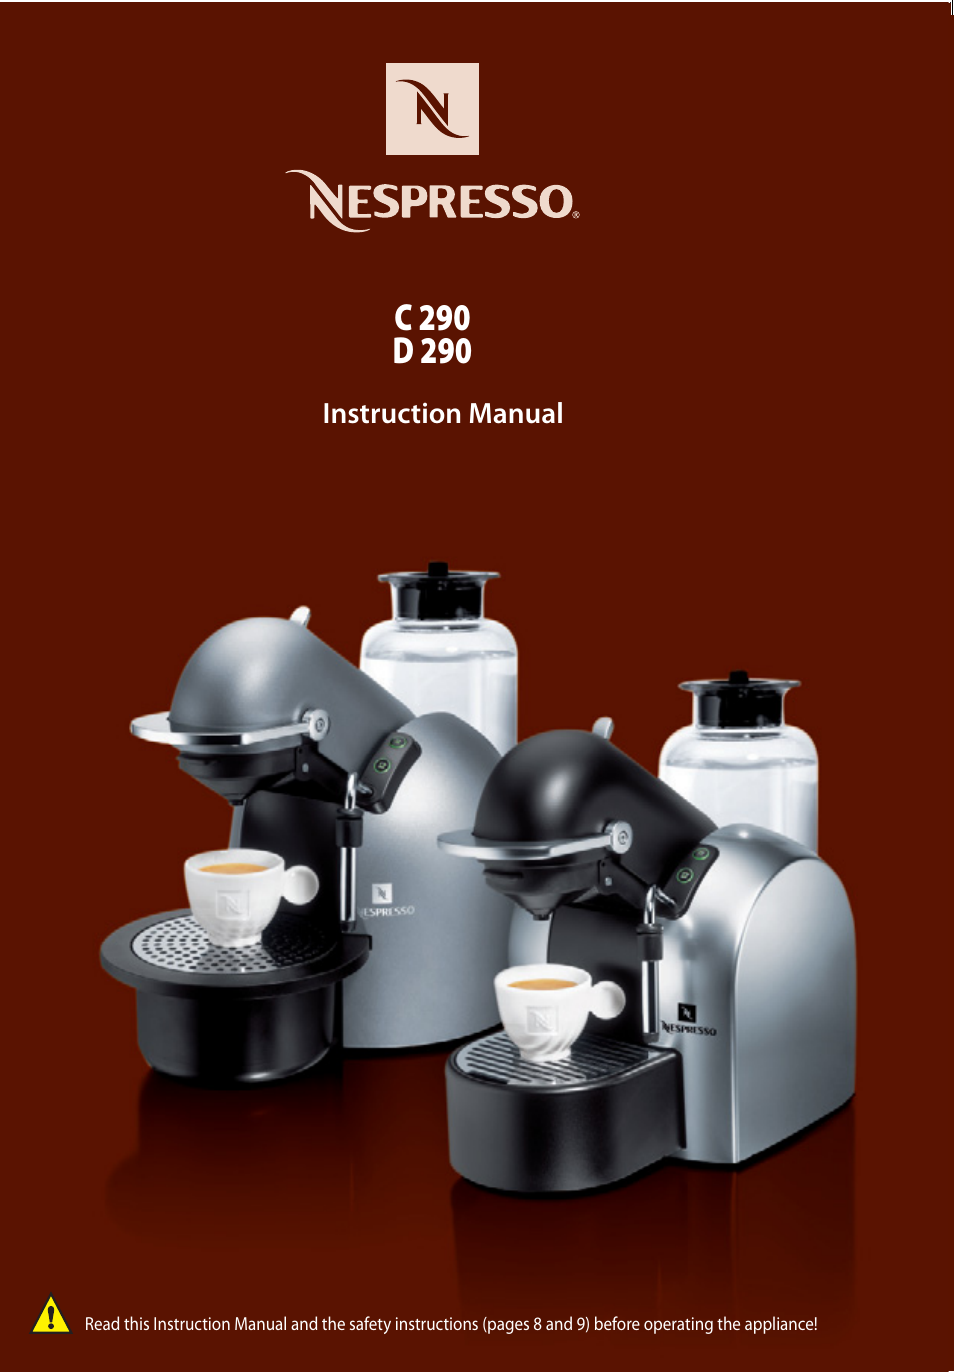 Nespresso Coffee Maker Manual : Nespresso D290 User Manual 10 pages Also for: C290